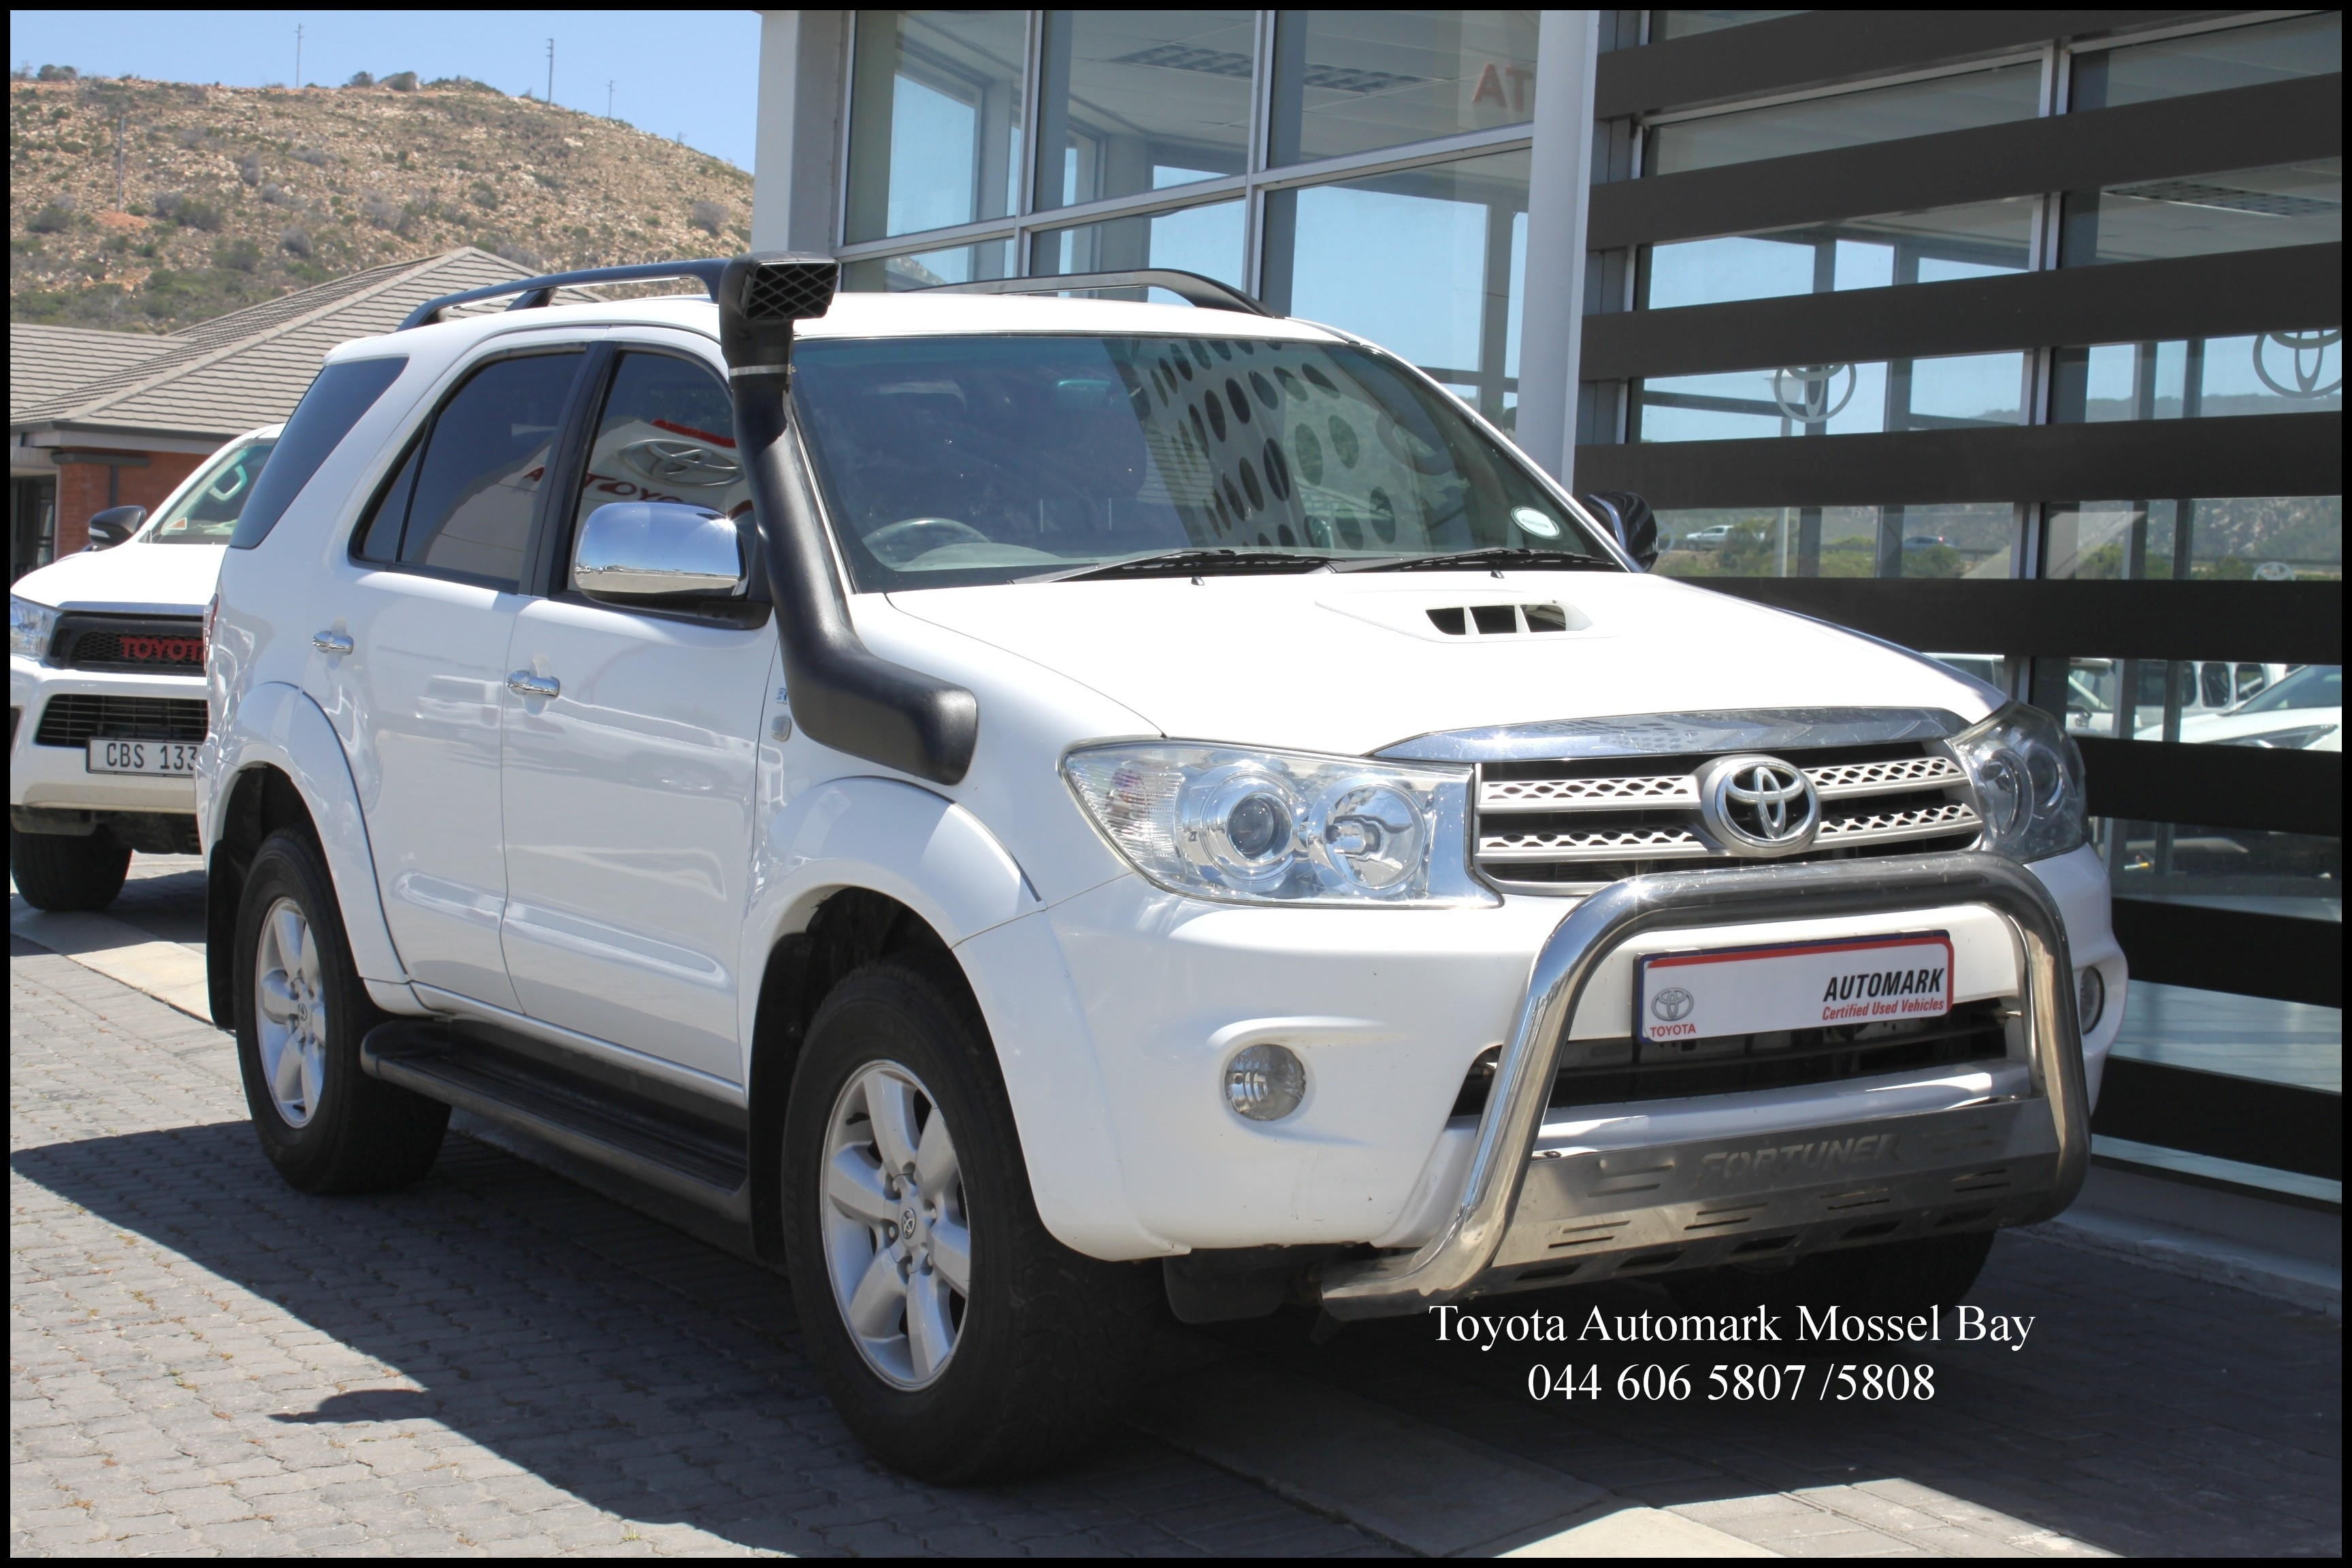 dealers serve orange anaheim and corona ca and other nearby areas Toyota Rav4 2009 New 2011 toyota fortuner 3 0d 4d 4—4 Auto Mossel Bay